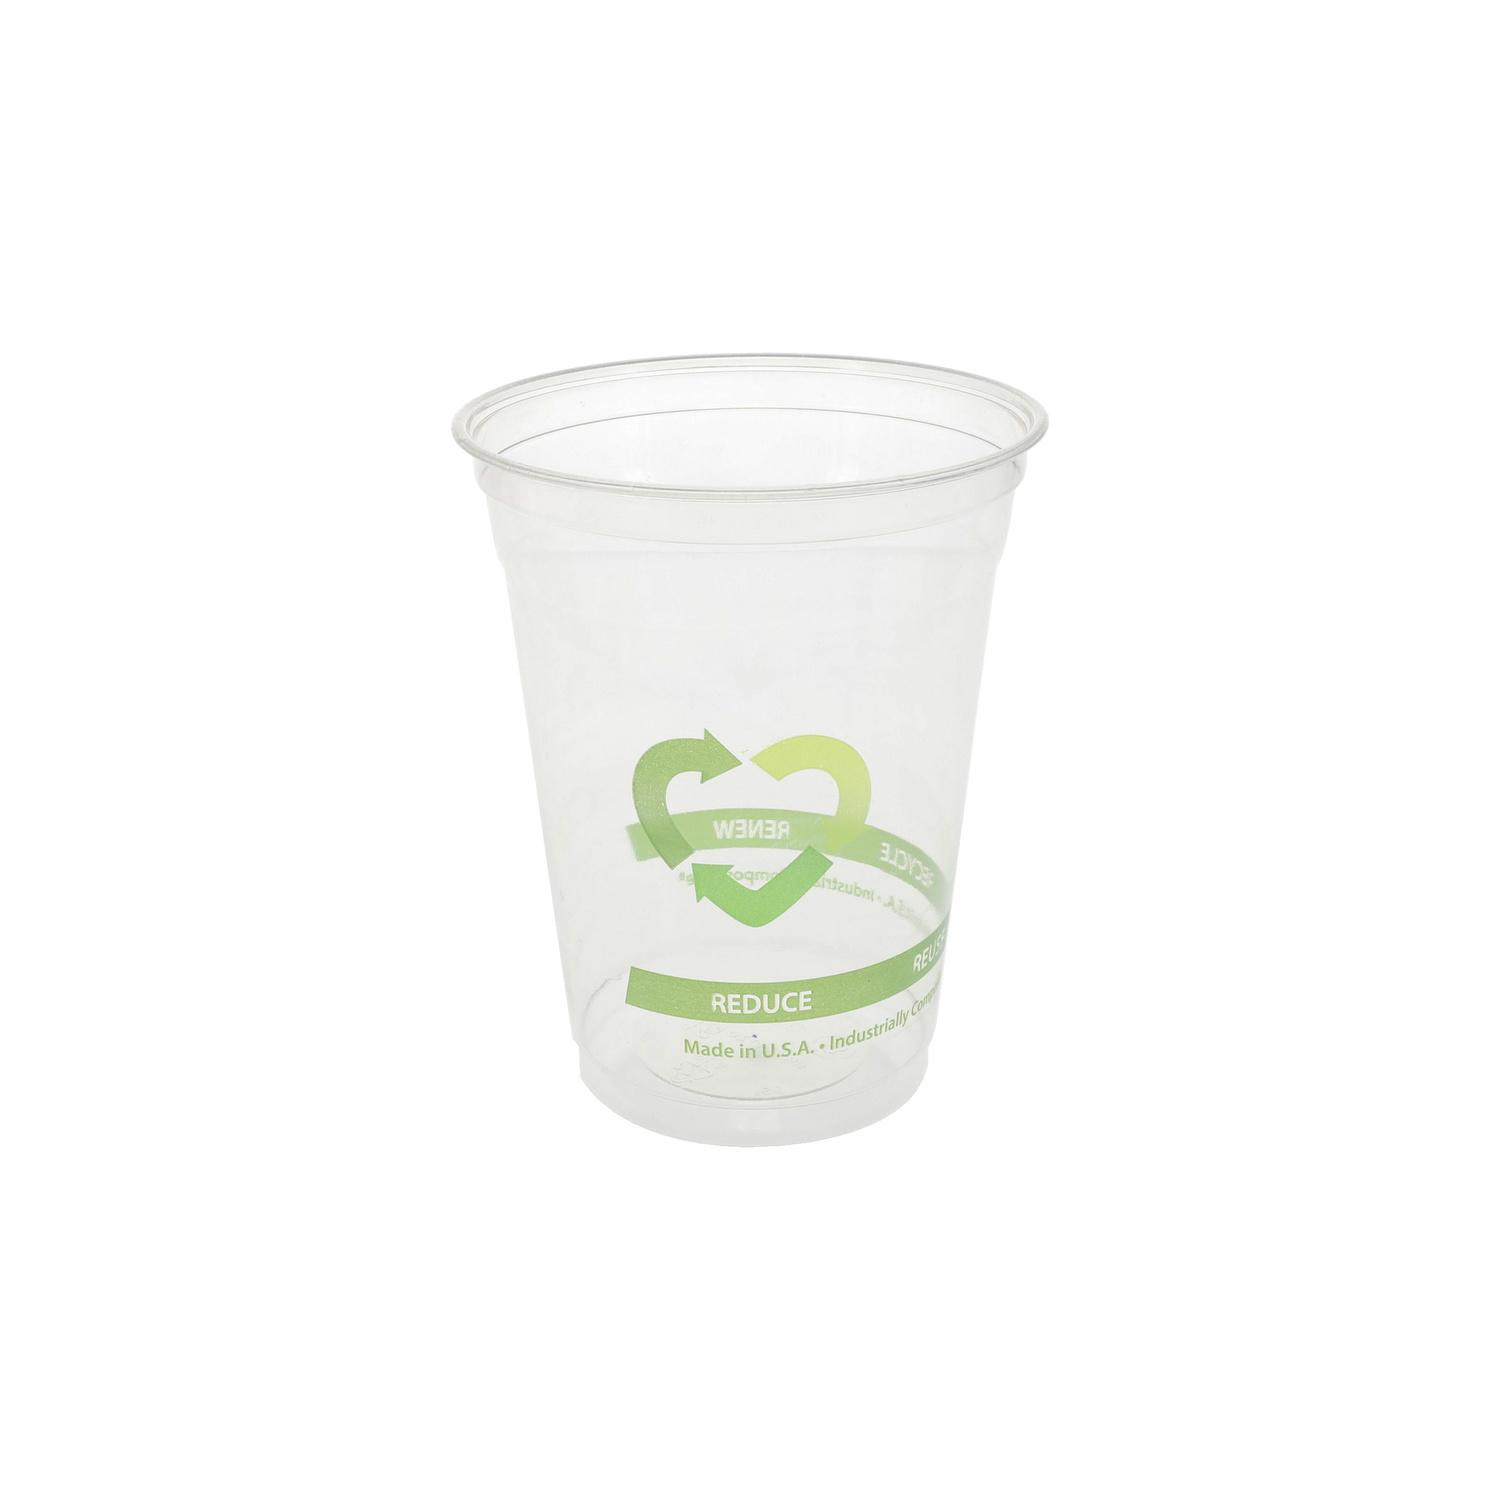 Image of Cup Plastic Clear Pla (polylactic Acid) Cup 16-18 Ounce